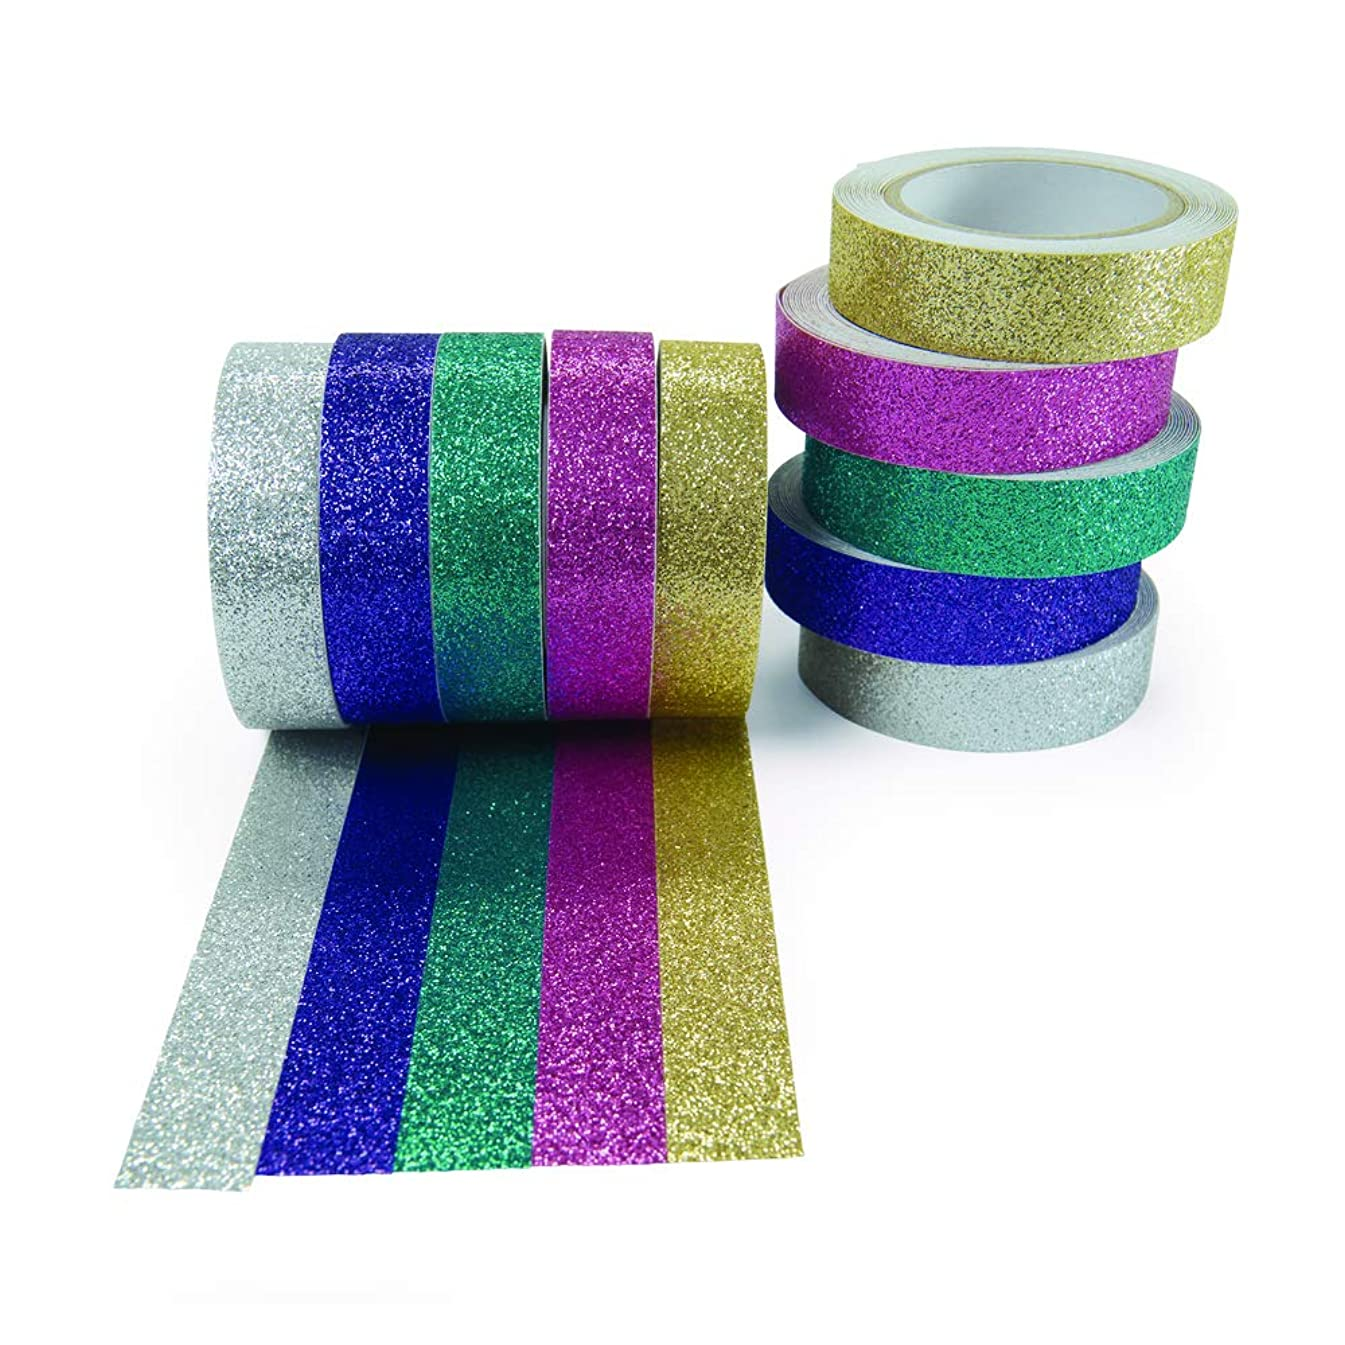 Colorations Snazzy Glitter Craft Tape (Pack of 10)